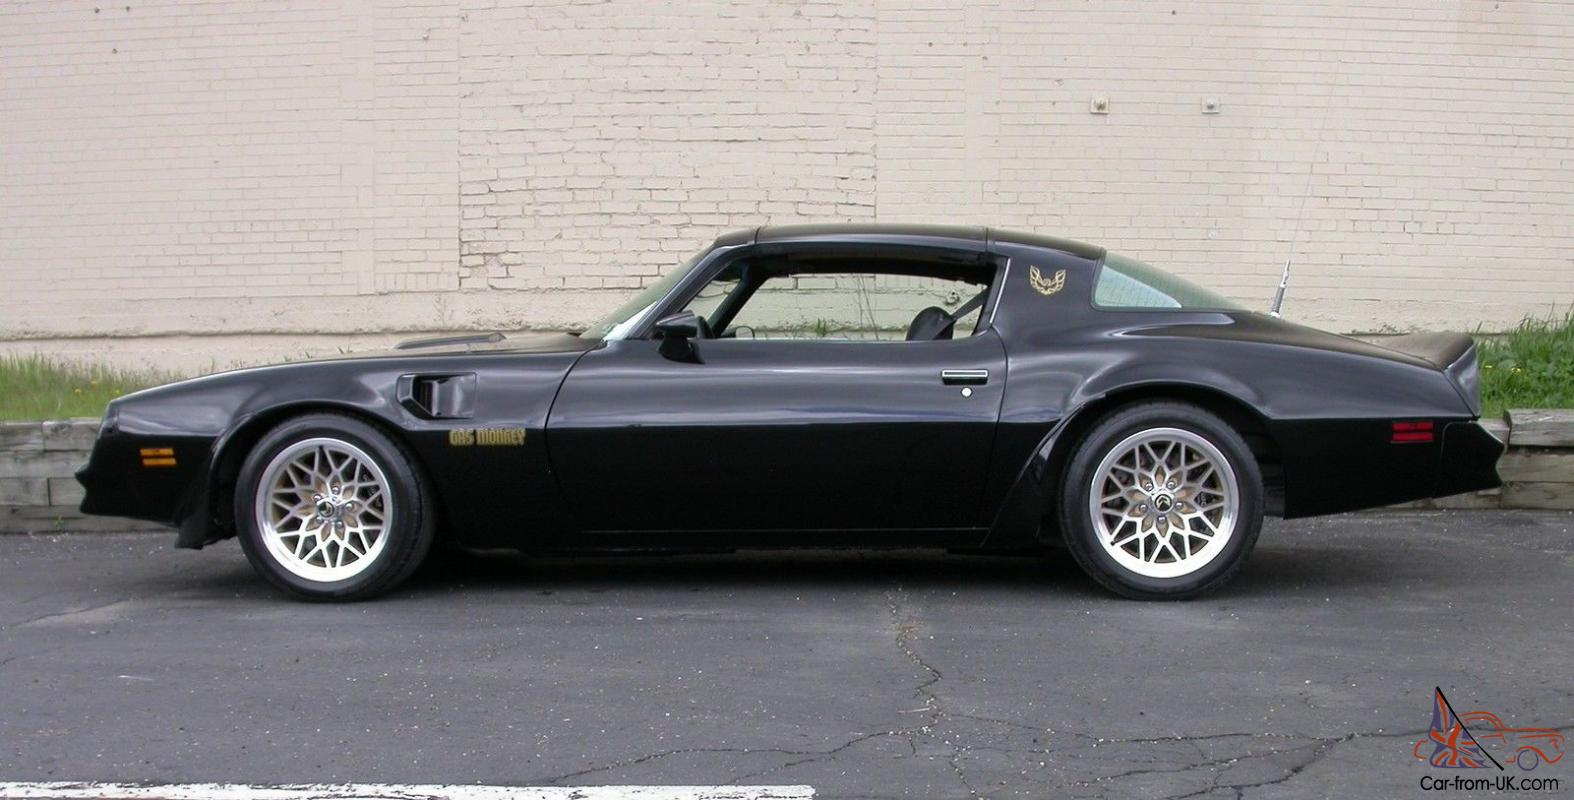 Gas Monkey Garage Cars For Sale Ebay >> Gas Monkey 'Smokey and Bandit' 77 TransAm Burt Reynolds